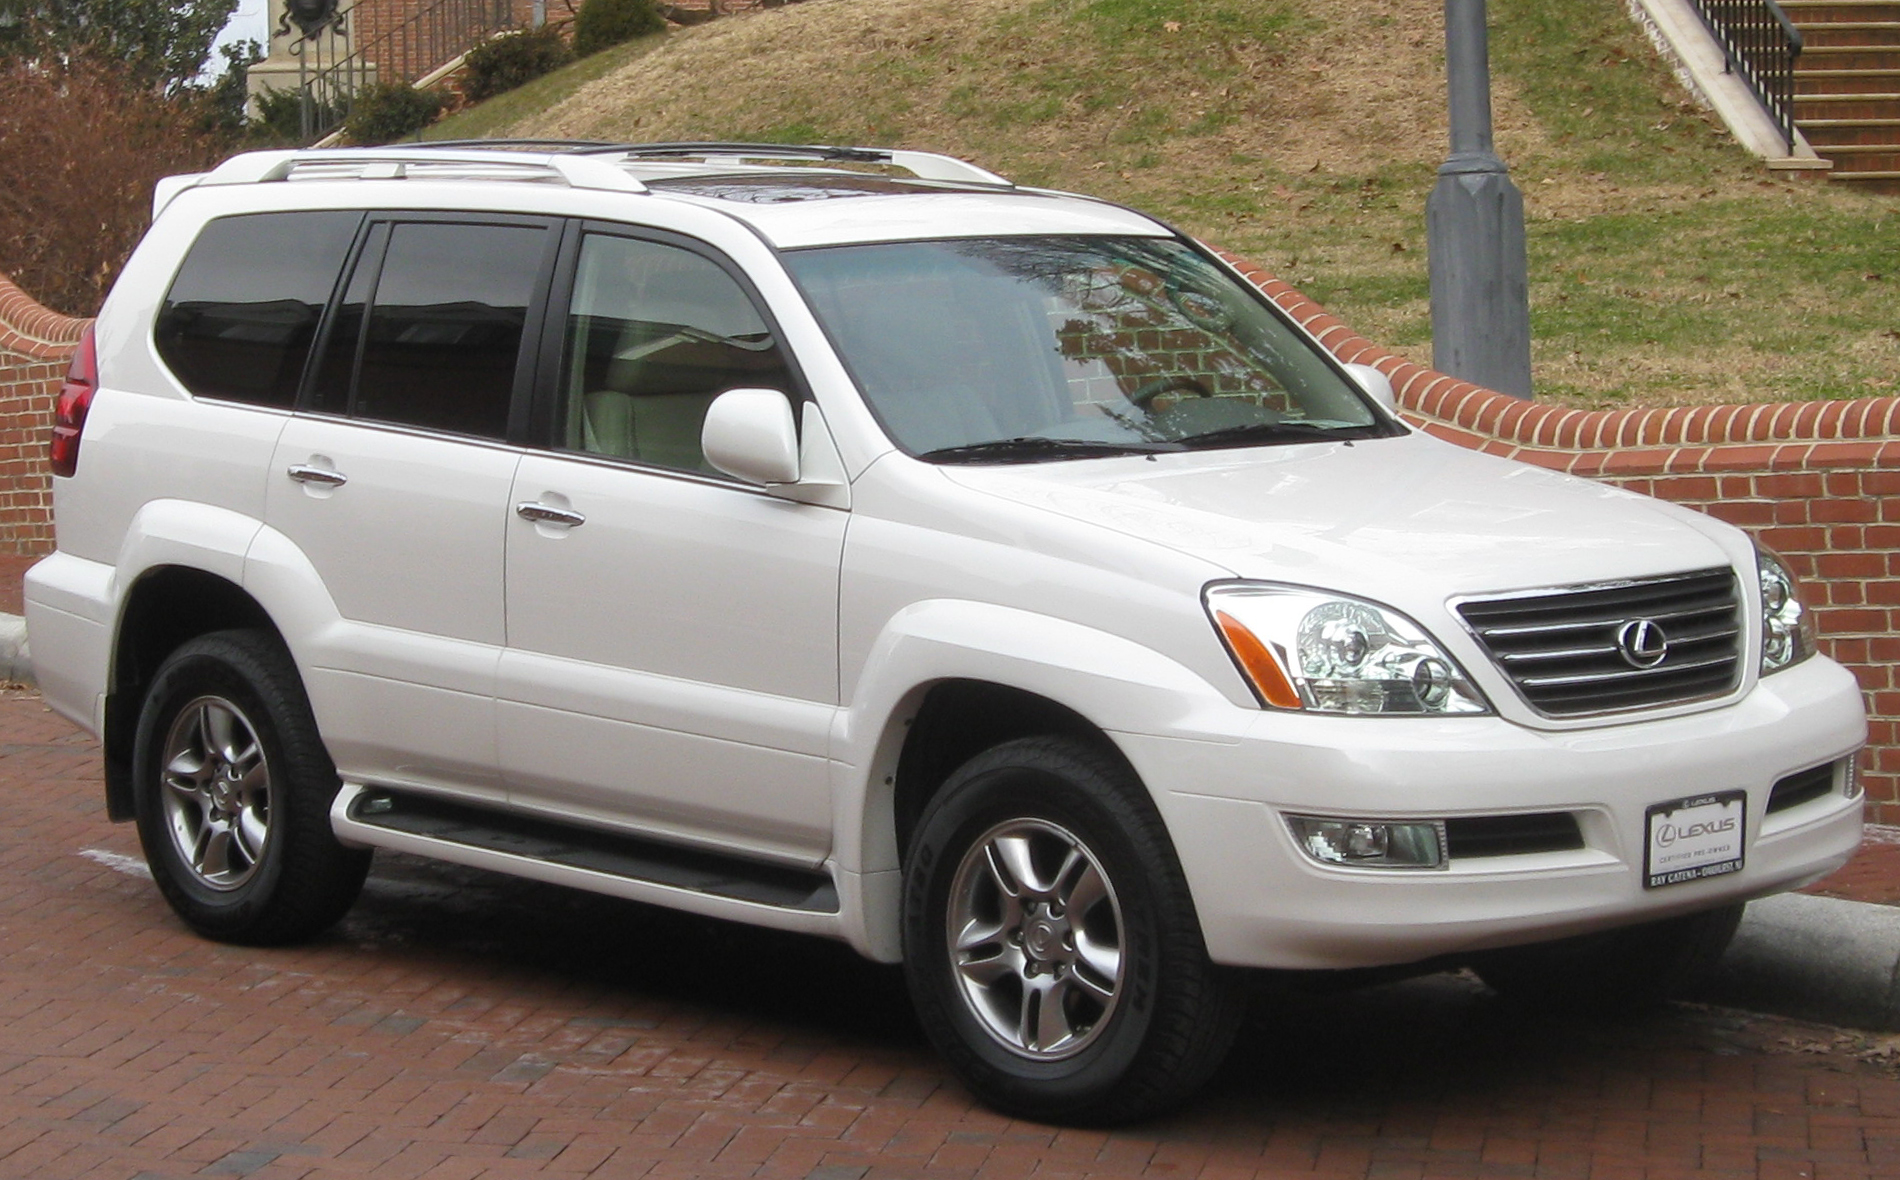 Captivating 2005 LEXUS GX 470   Image #26